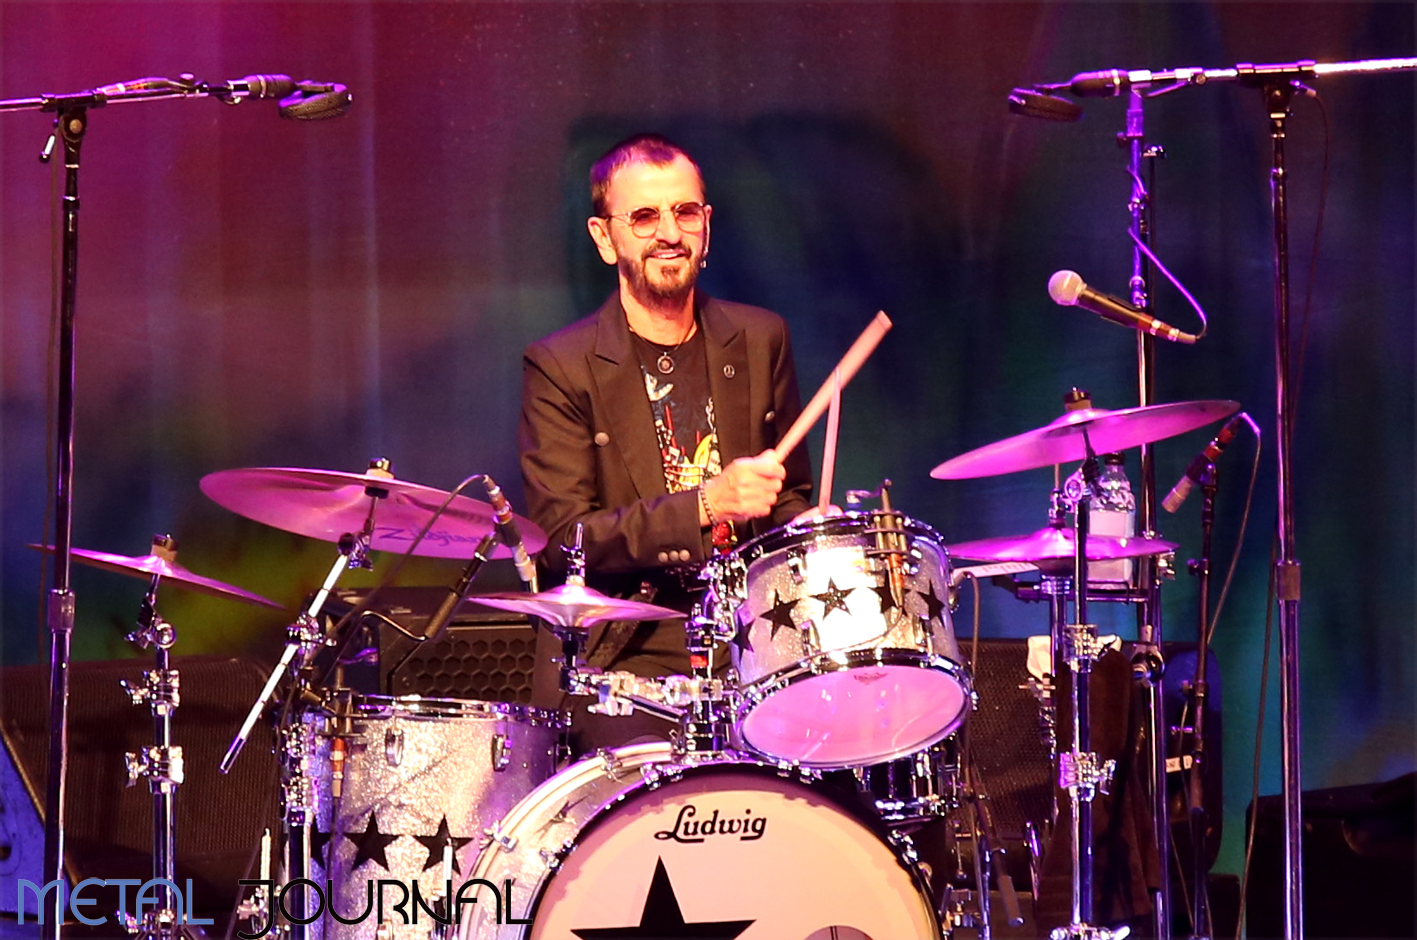 ringo starr - metal journal 2018 pic 9